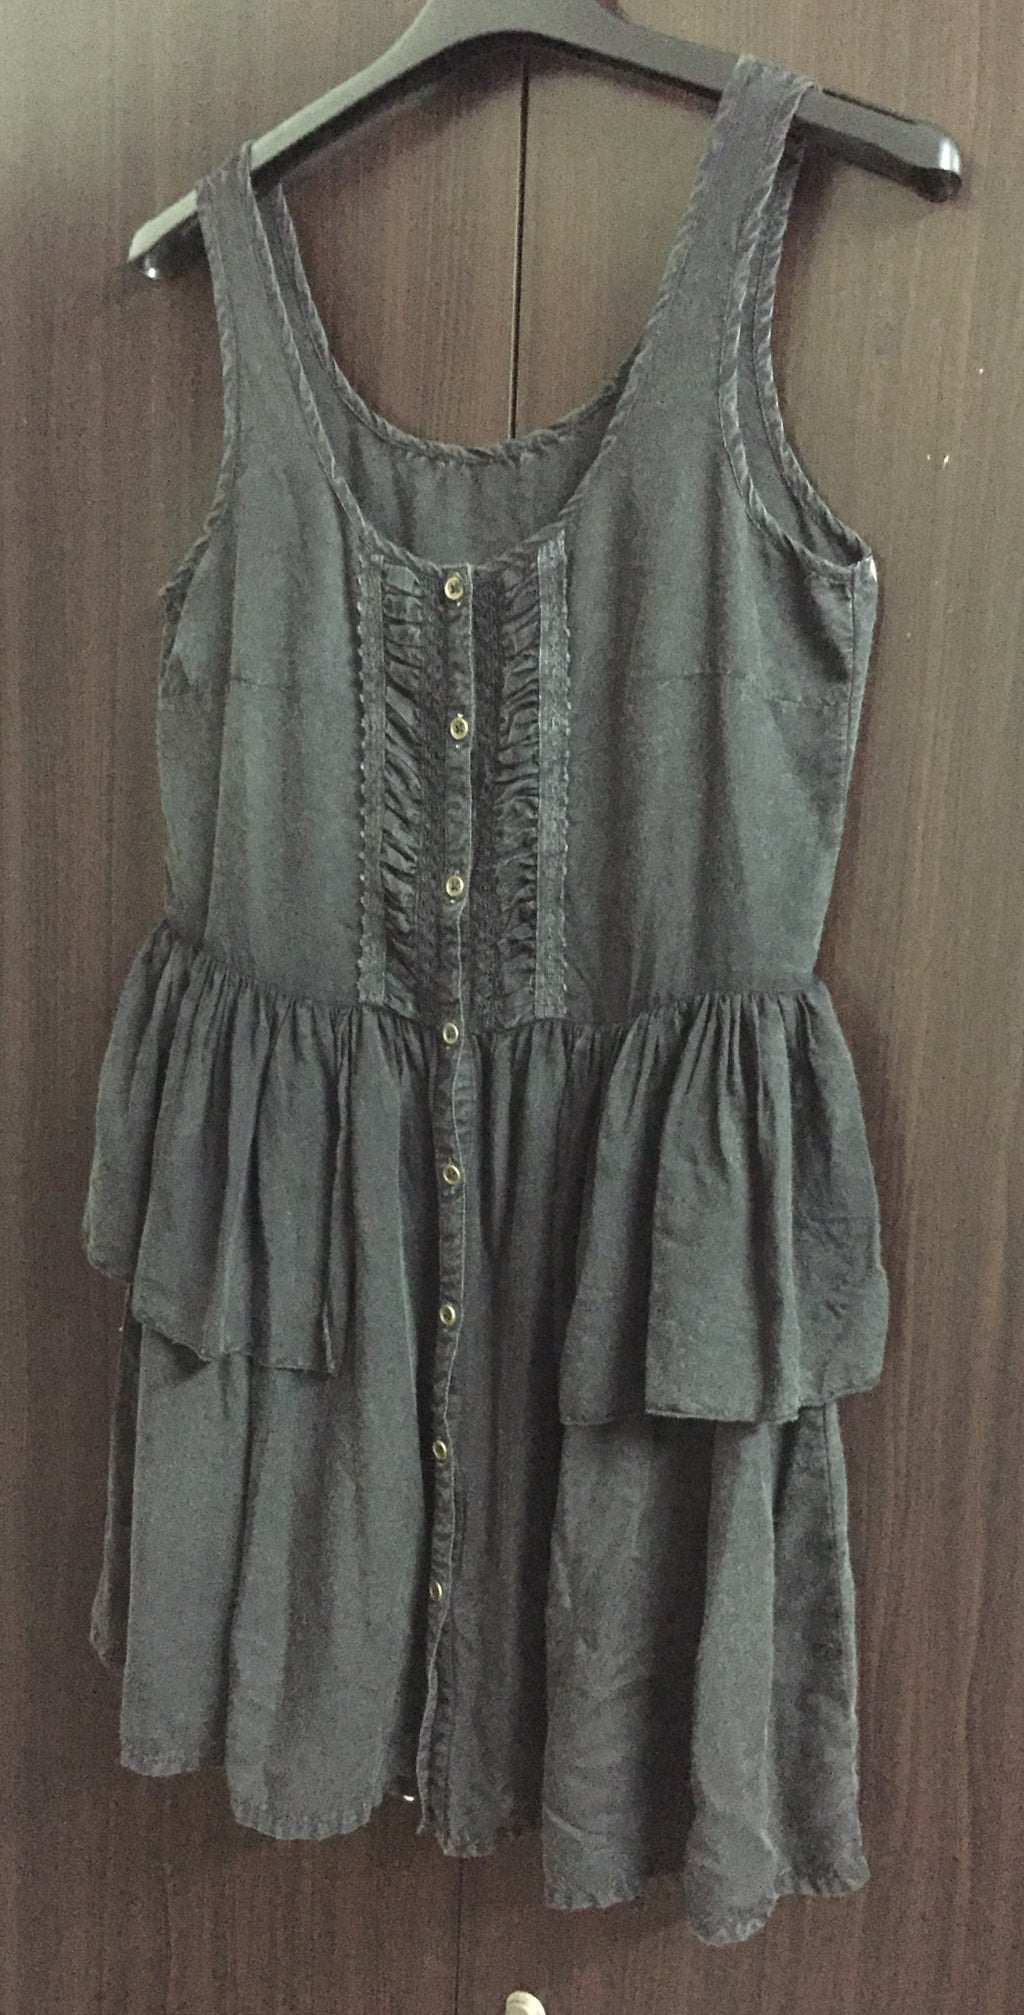 Rusty Black Faded Look Short Dress